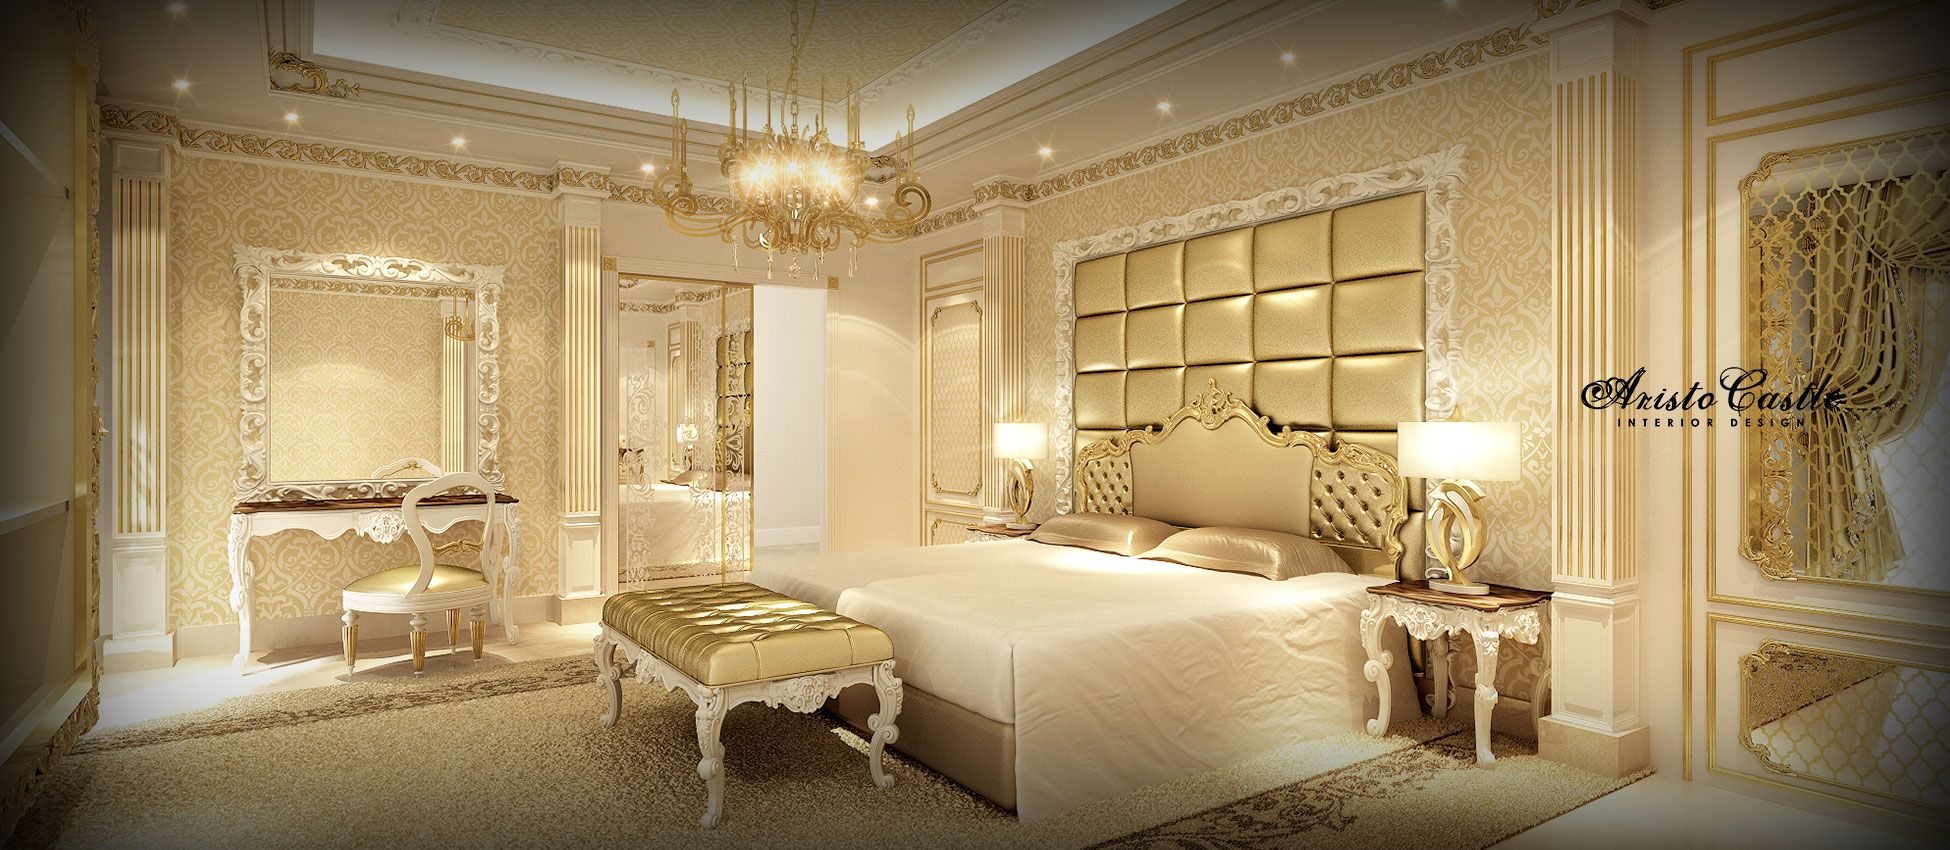 Dubai luxury interior design luxury master bedroom for Master bedroom interior